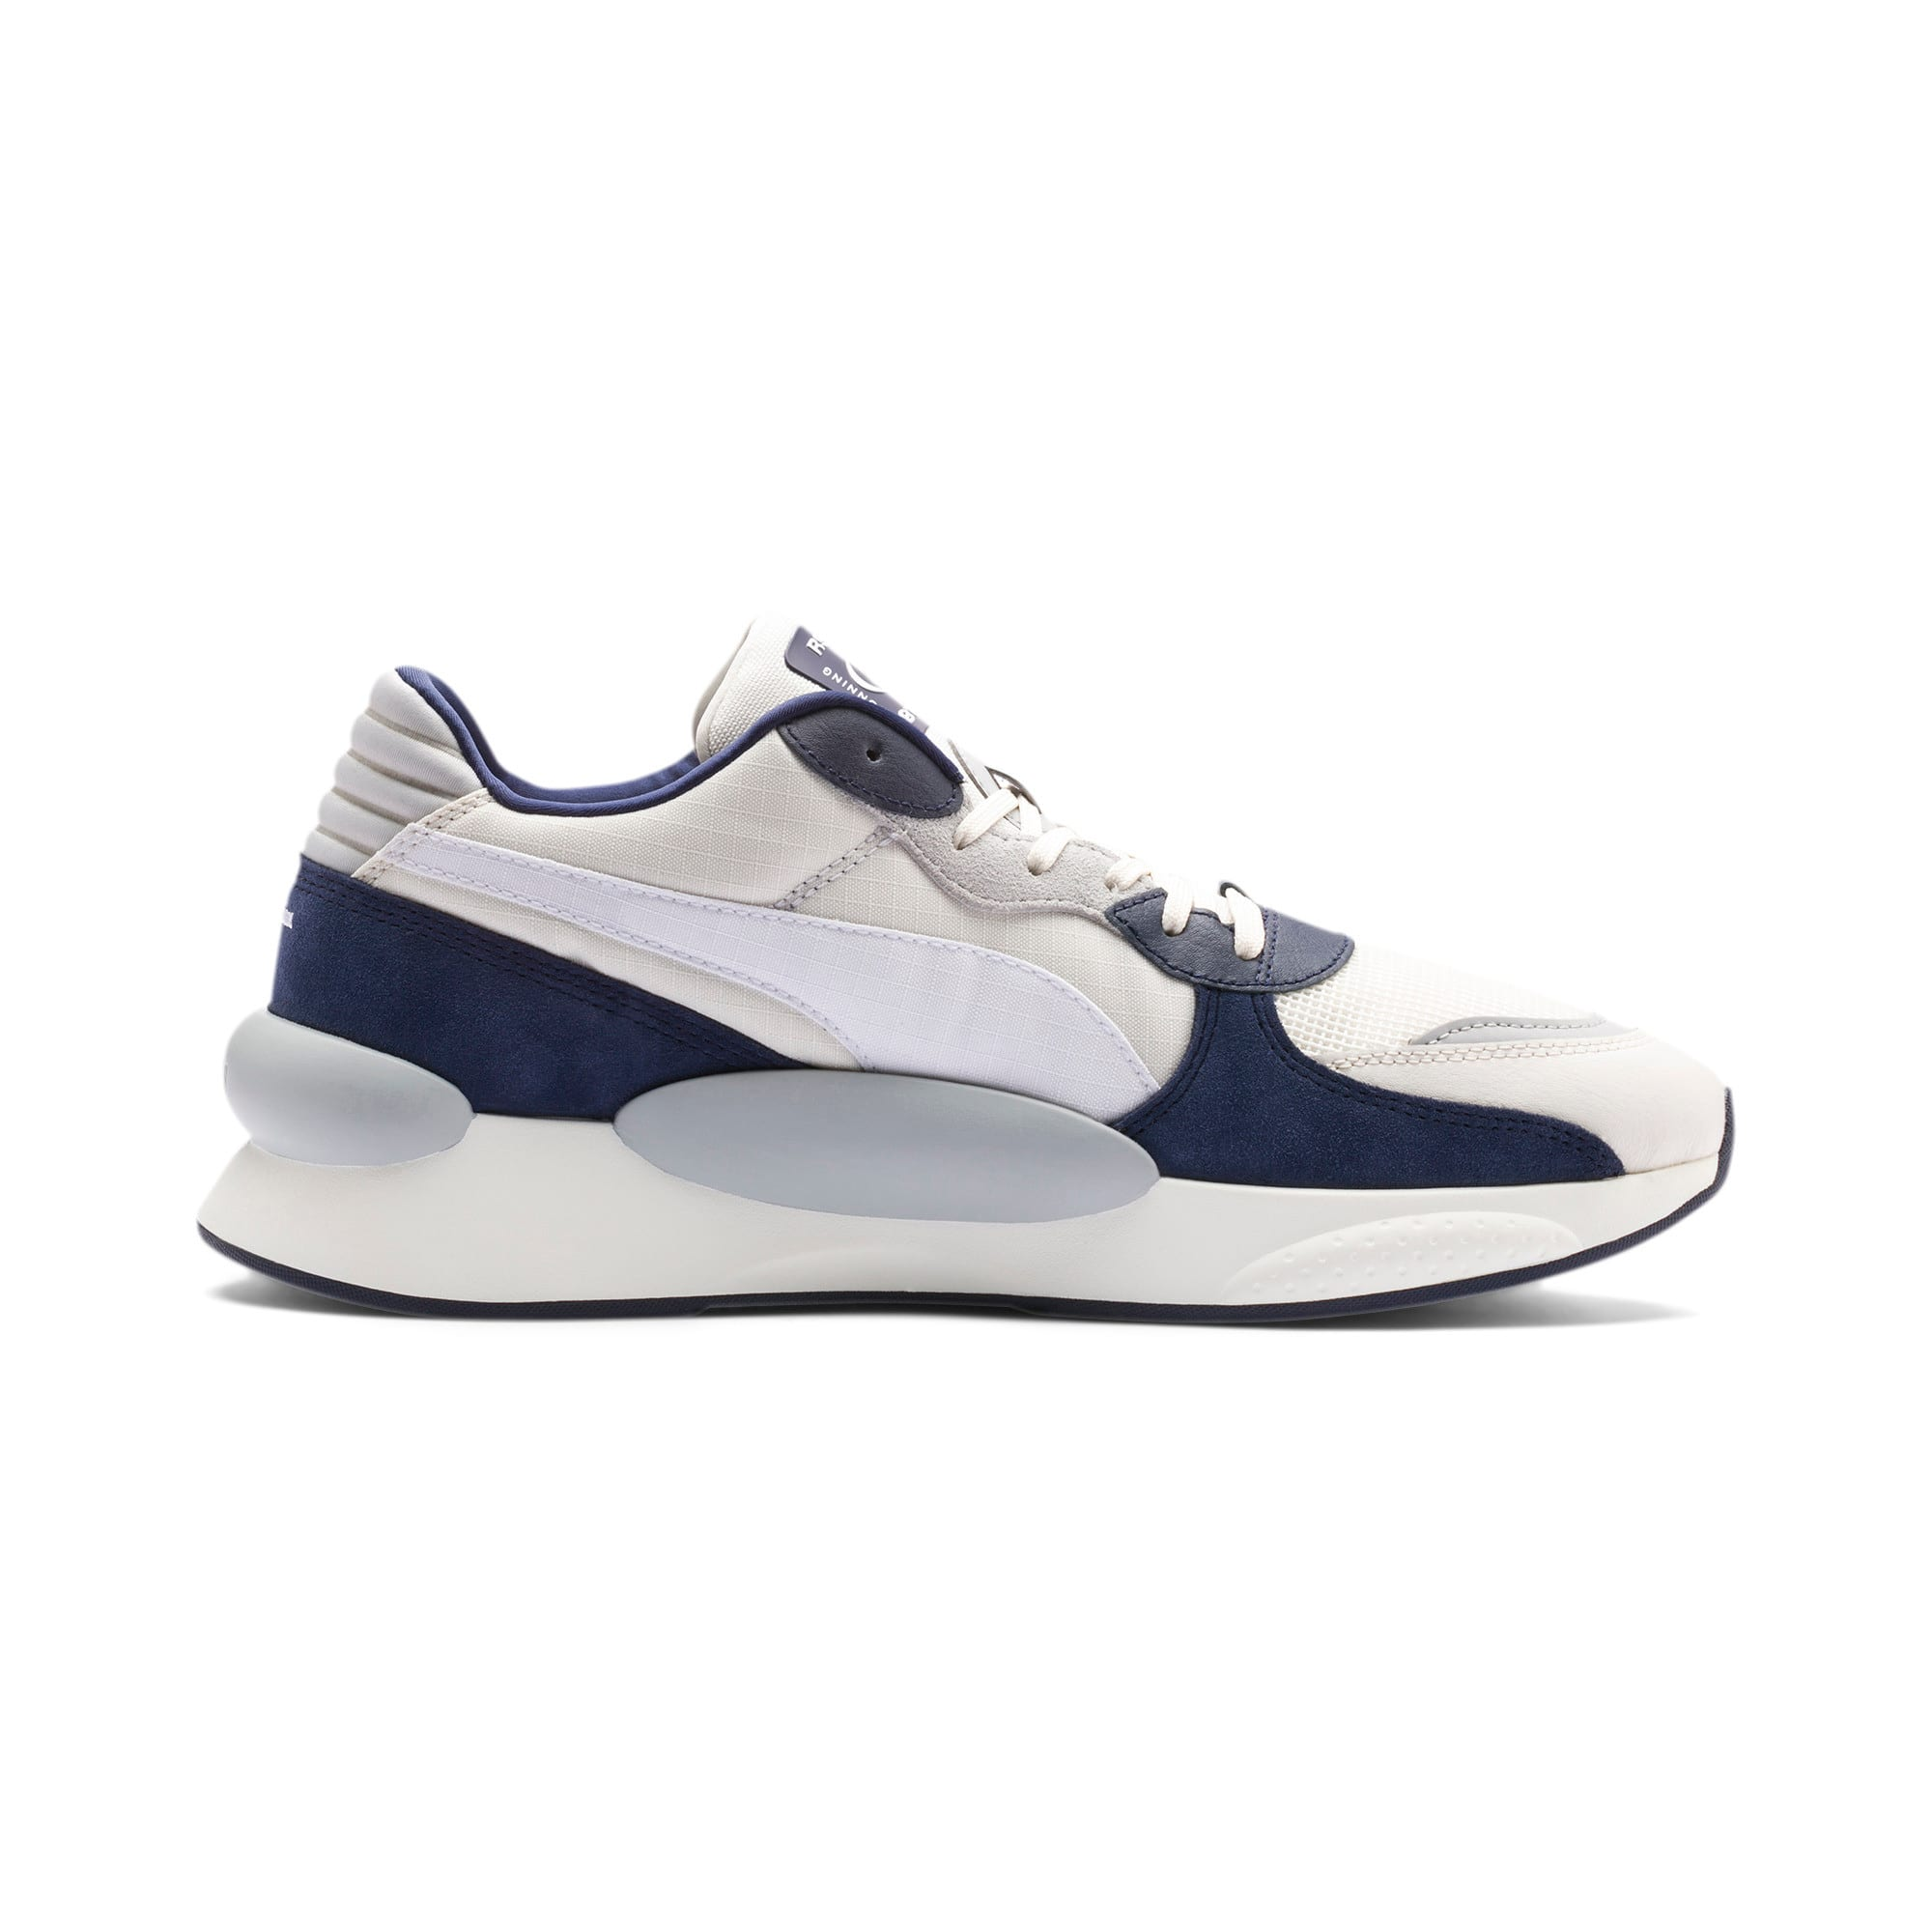 Anteprima 5 di RS 9.8 Space Trainers, Whisper White-Peacoat, medio